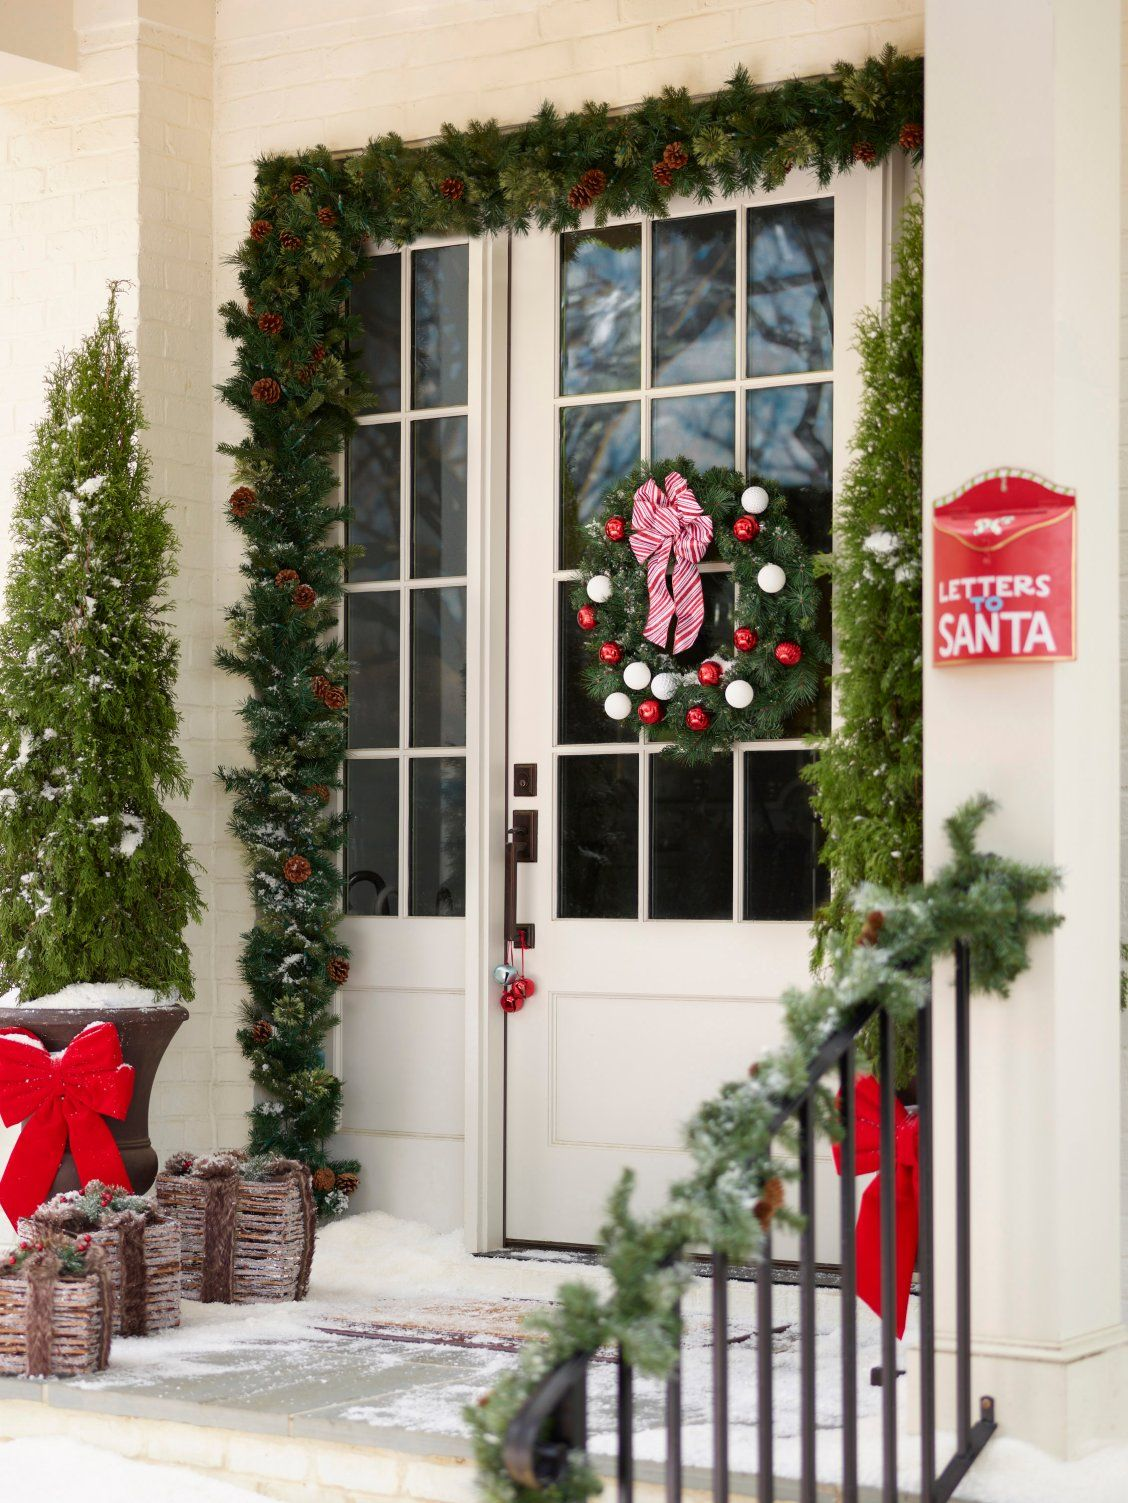 Need some outdoor Christmas decoration ideas Lowe s has you